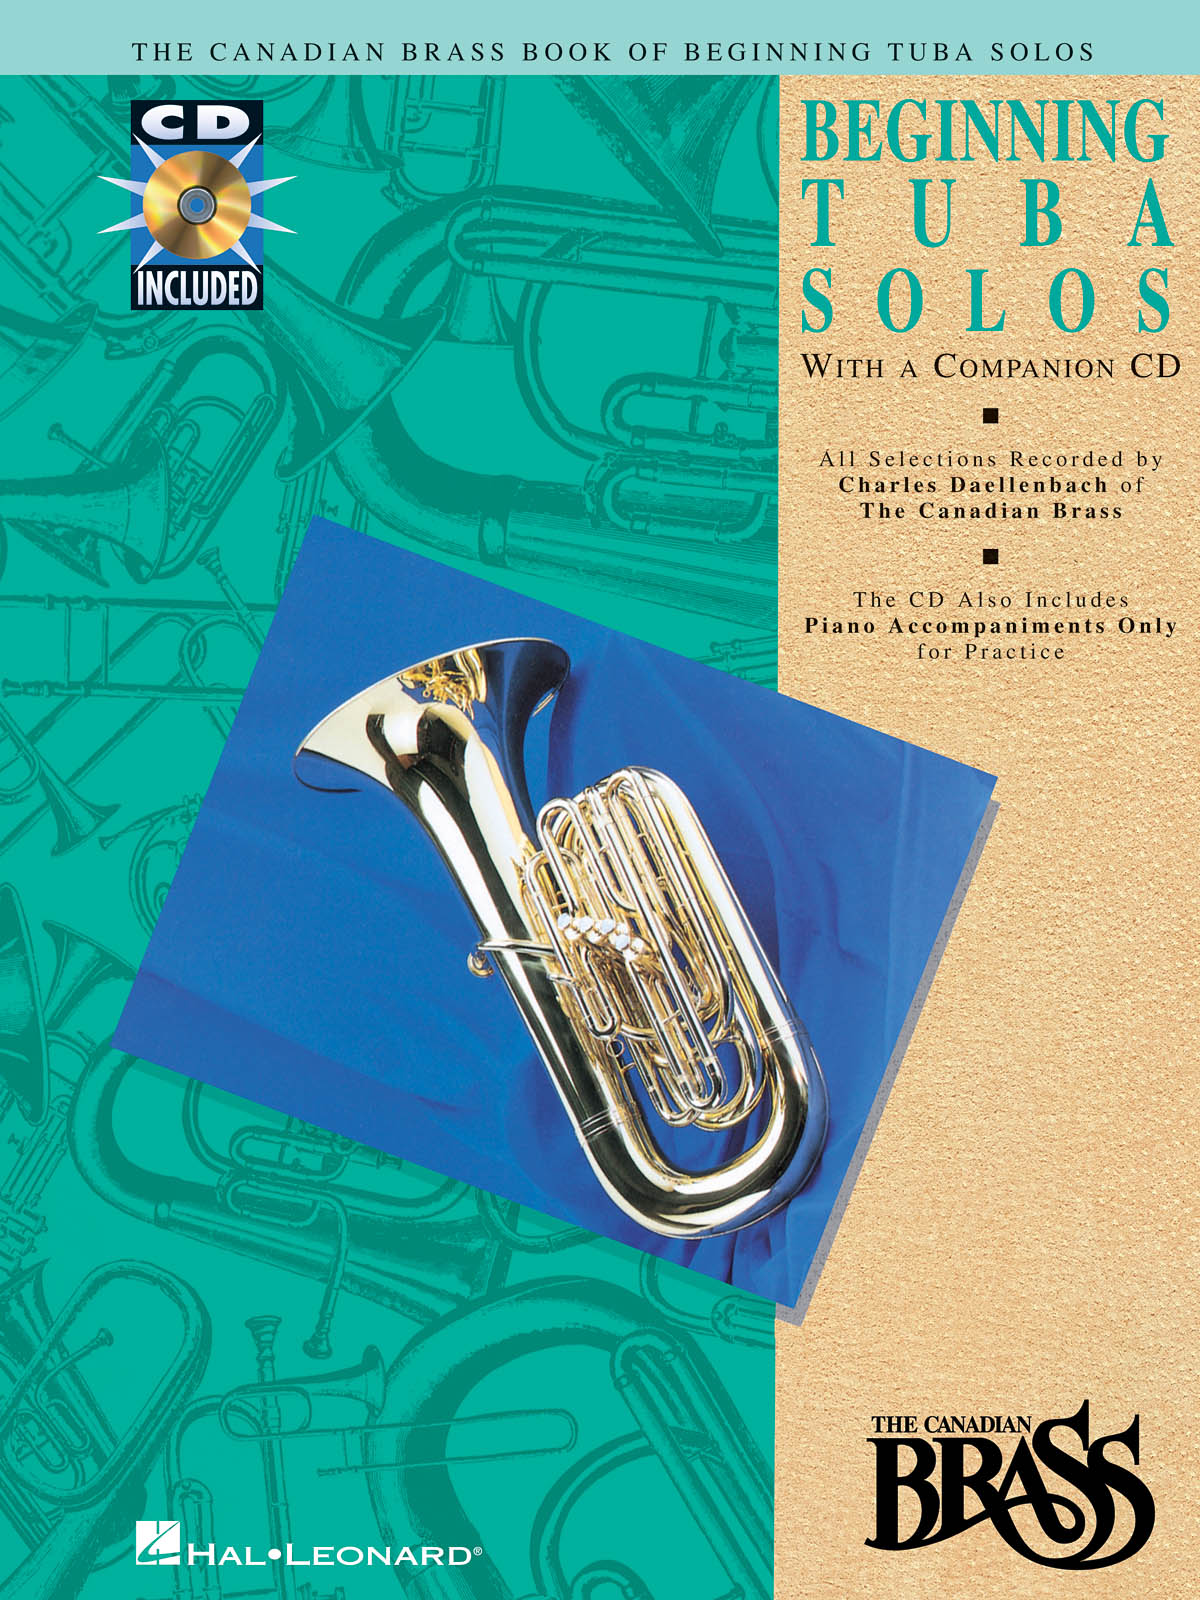 The Canadian Brass: Canadian Brass Book Of Beginning Tuba Solos: Tuba Solo: